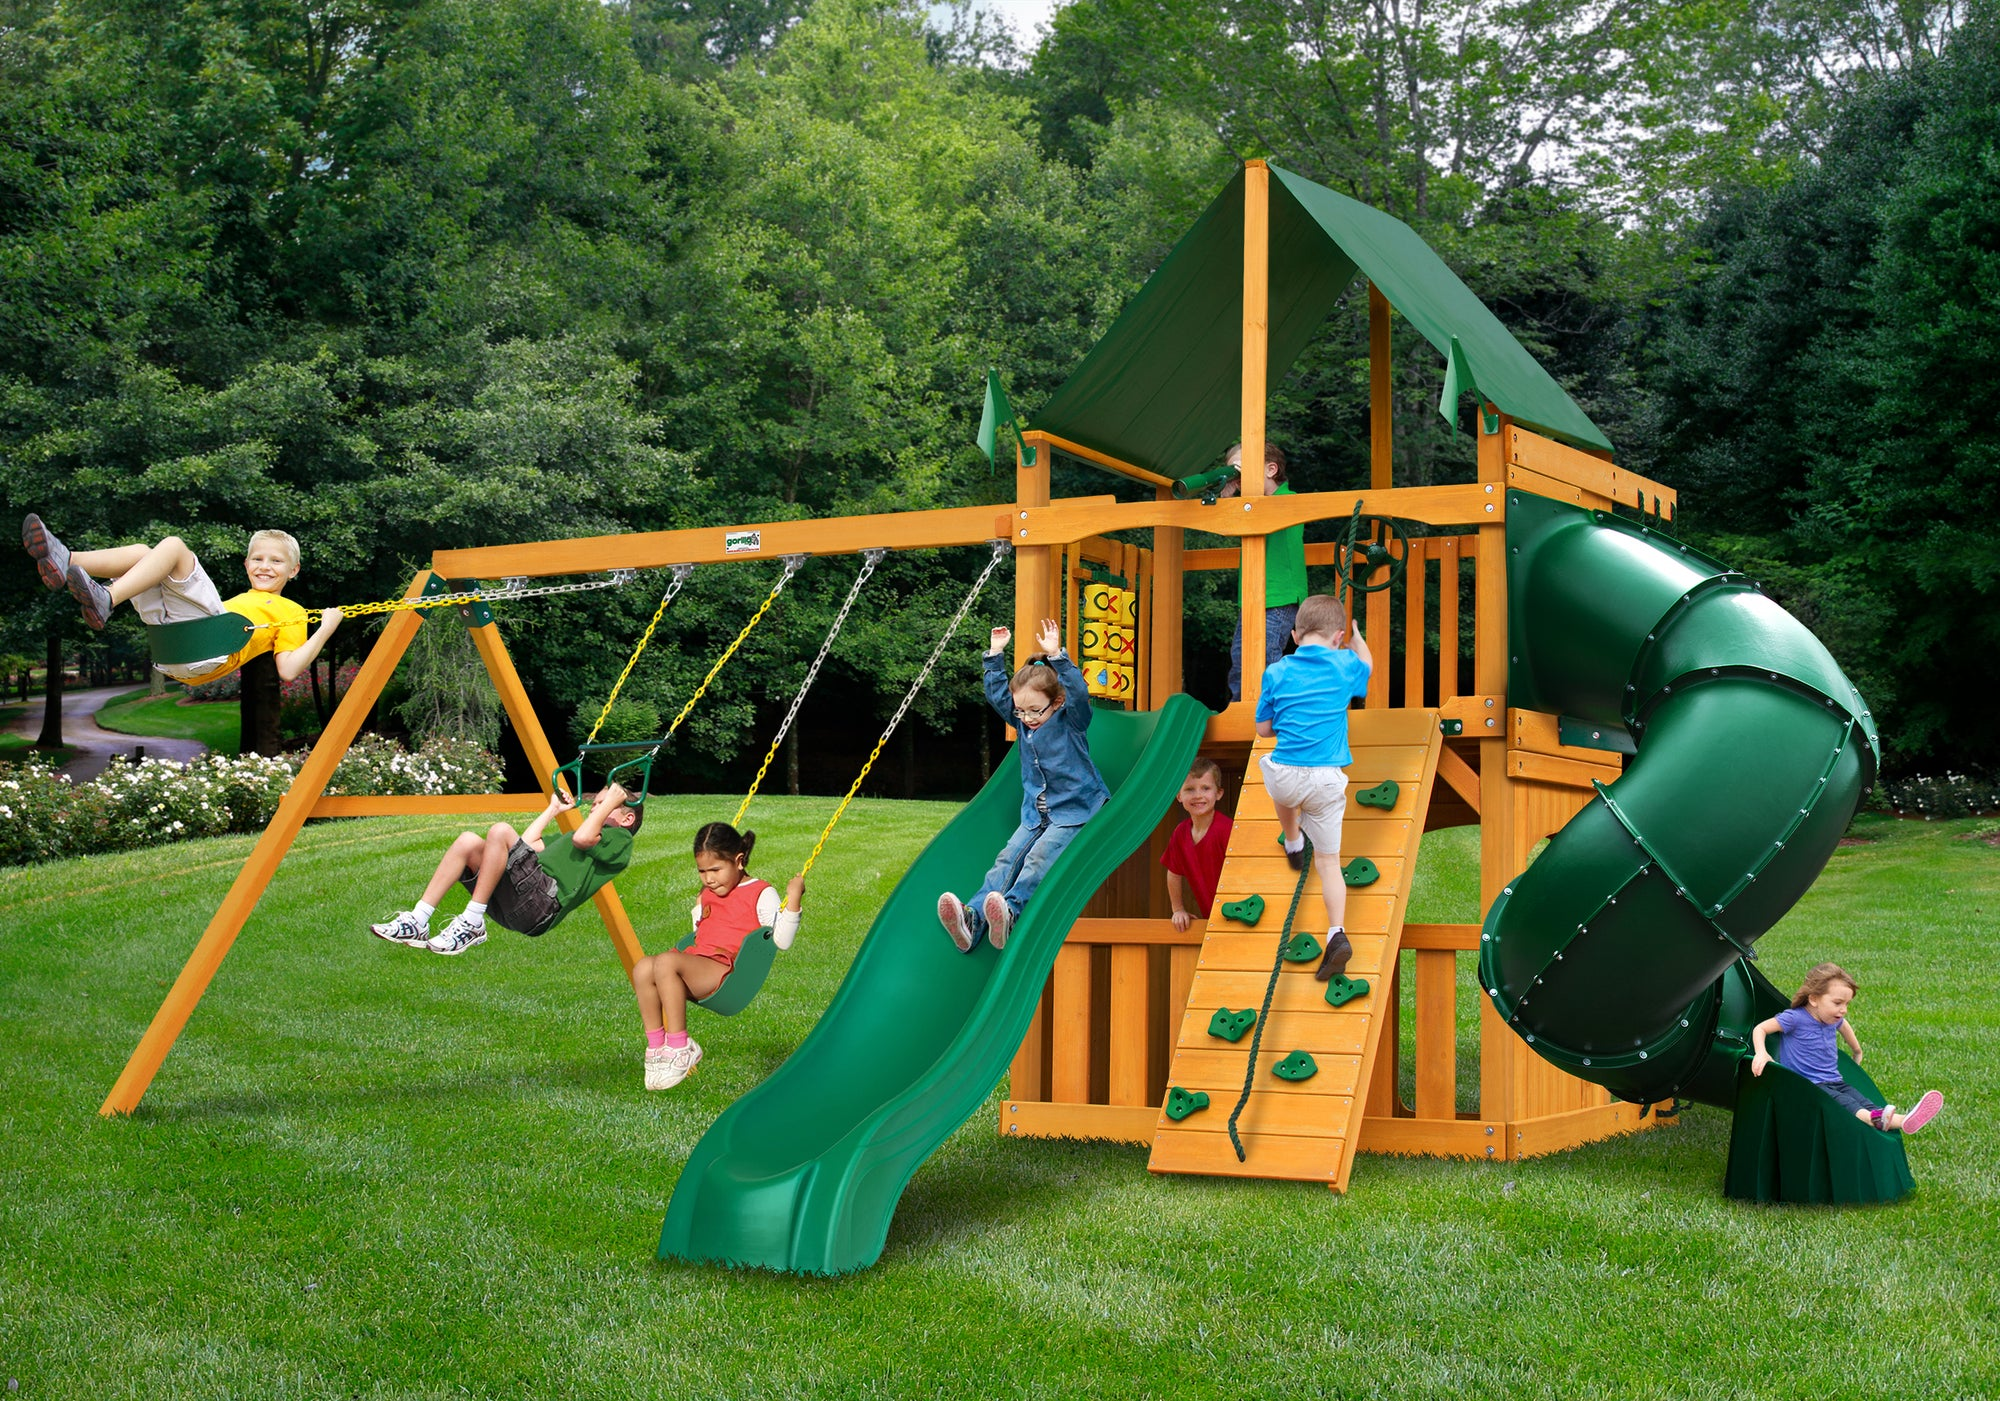 Gorilla Playsets Mountaineer Clubhouse Sunbrella Canopy Swing Set - Swing Set Paradise